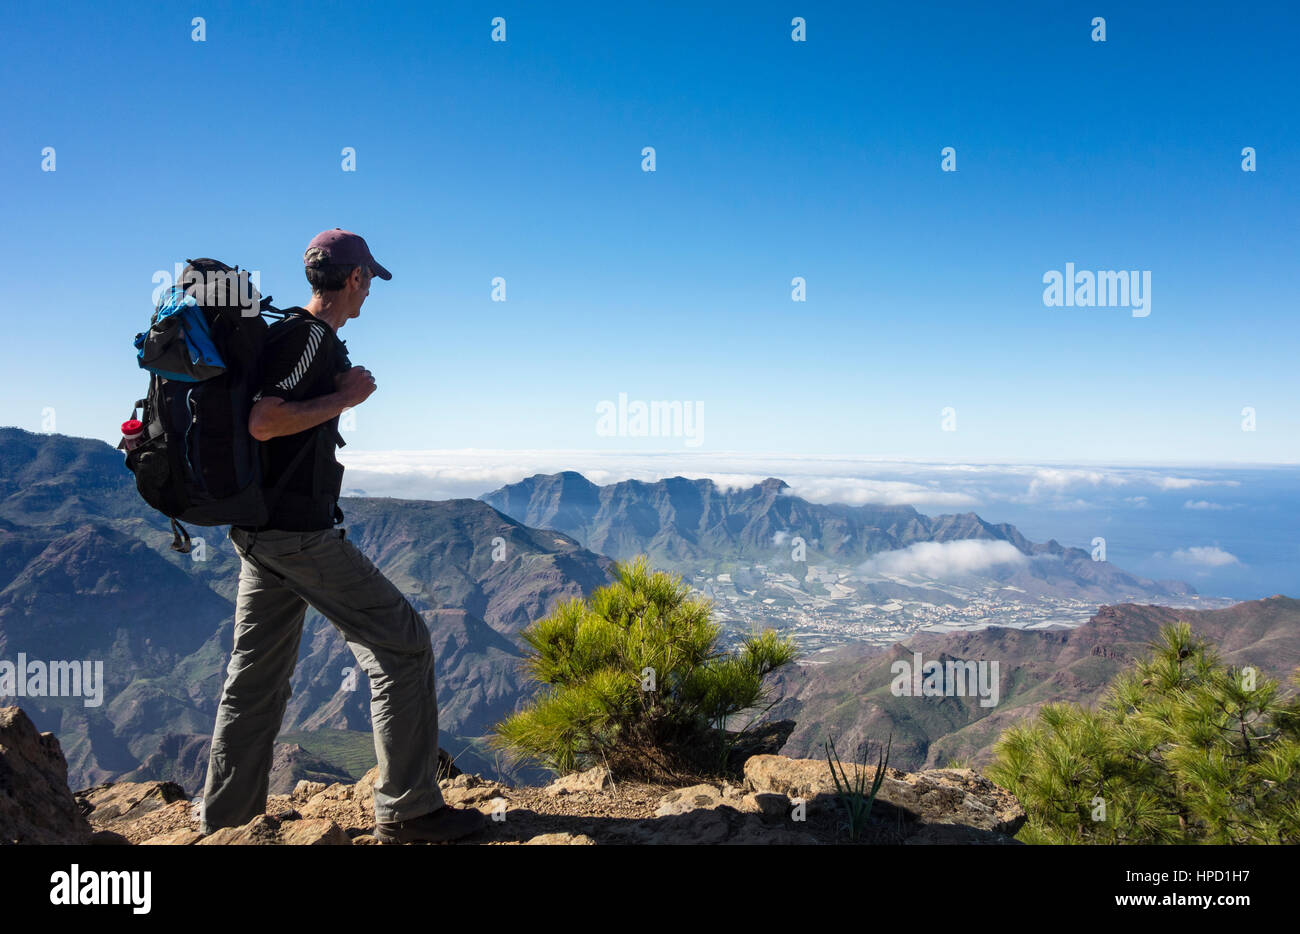 Mature male hiker on Alta Vista mountain on Gran Canaria with La Aldea de San Nicolas village in distance. Canary - Stock Image